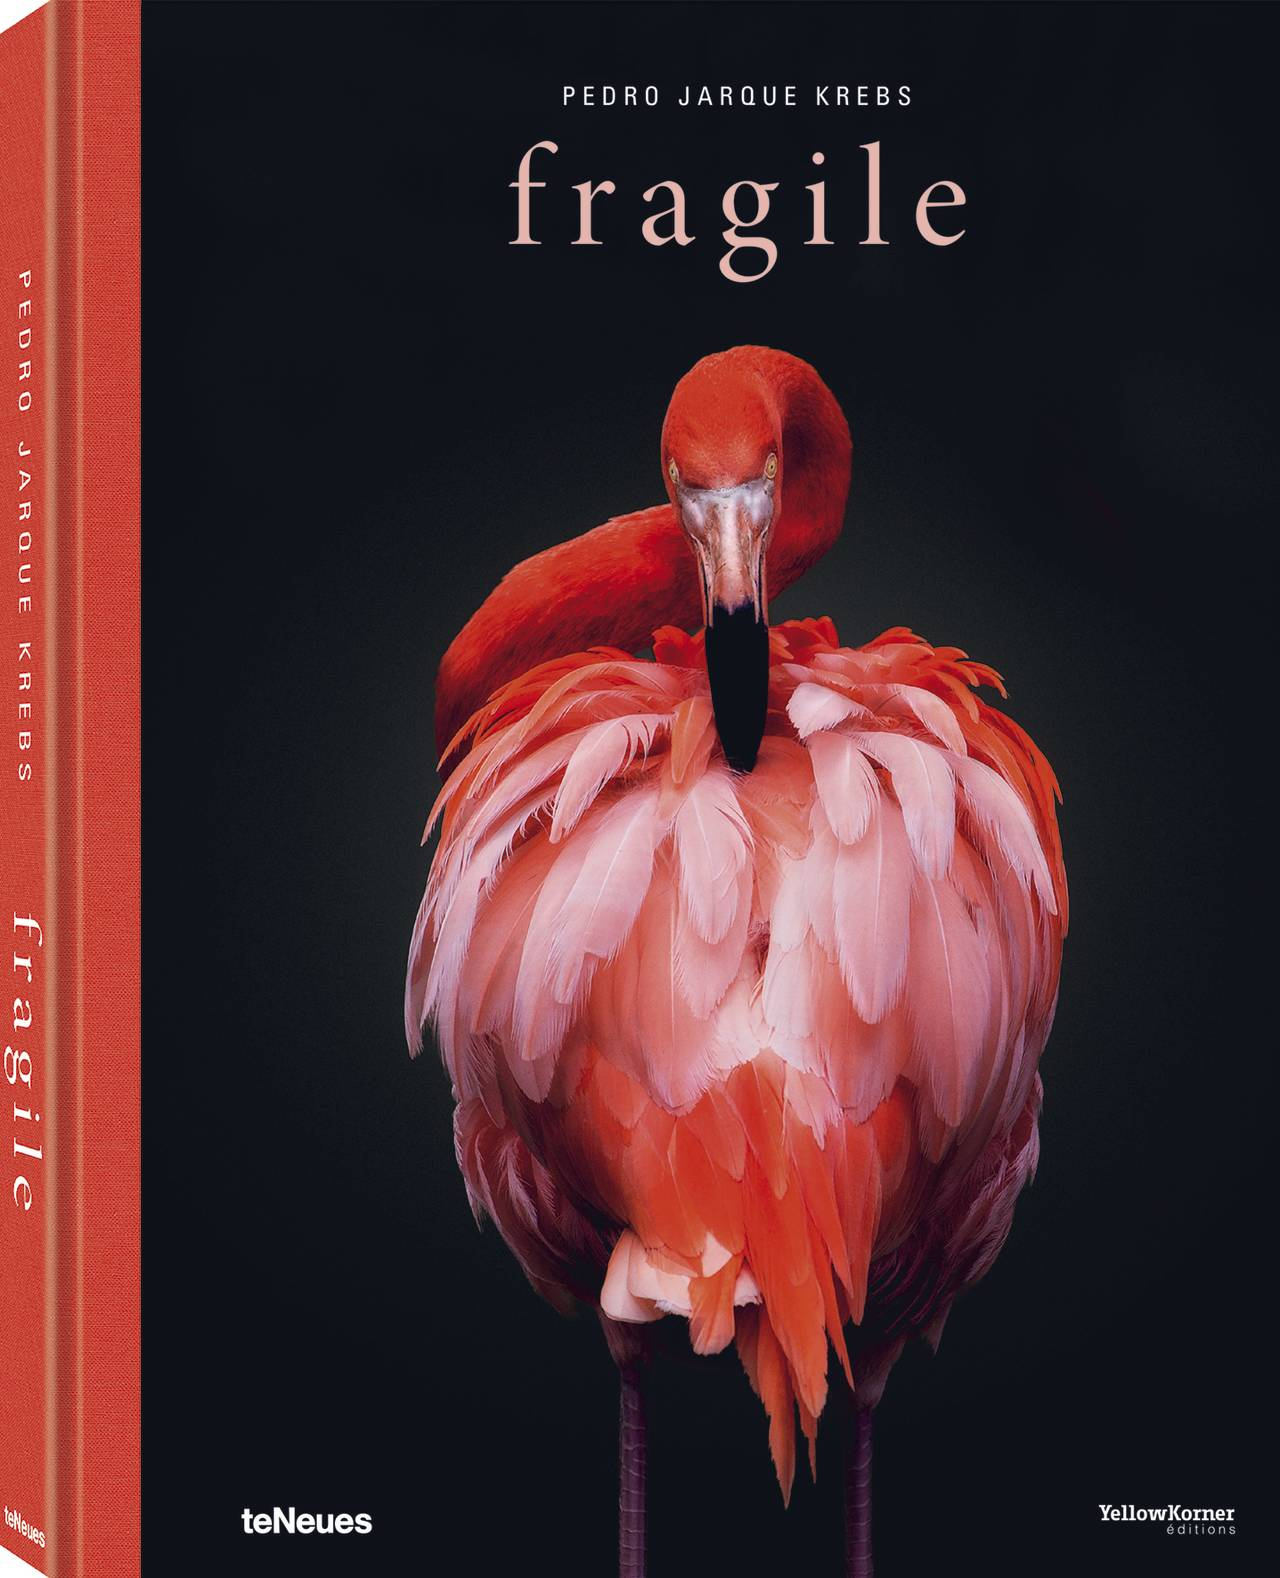 © fragile by Pedro Jarque Krebs, published by teNeues, www.teneues.com, American flamingo, Photo © Pedro Jarque Krebs. All rights reserved.